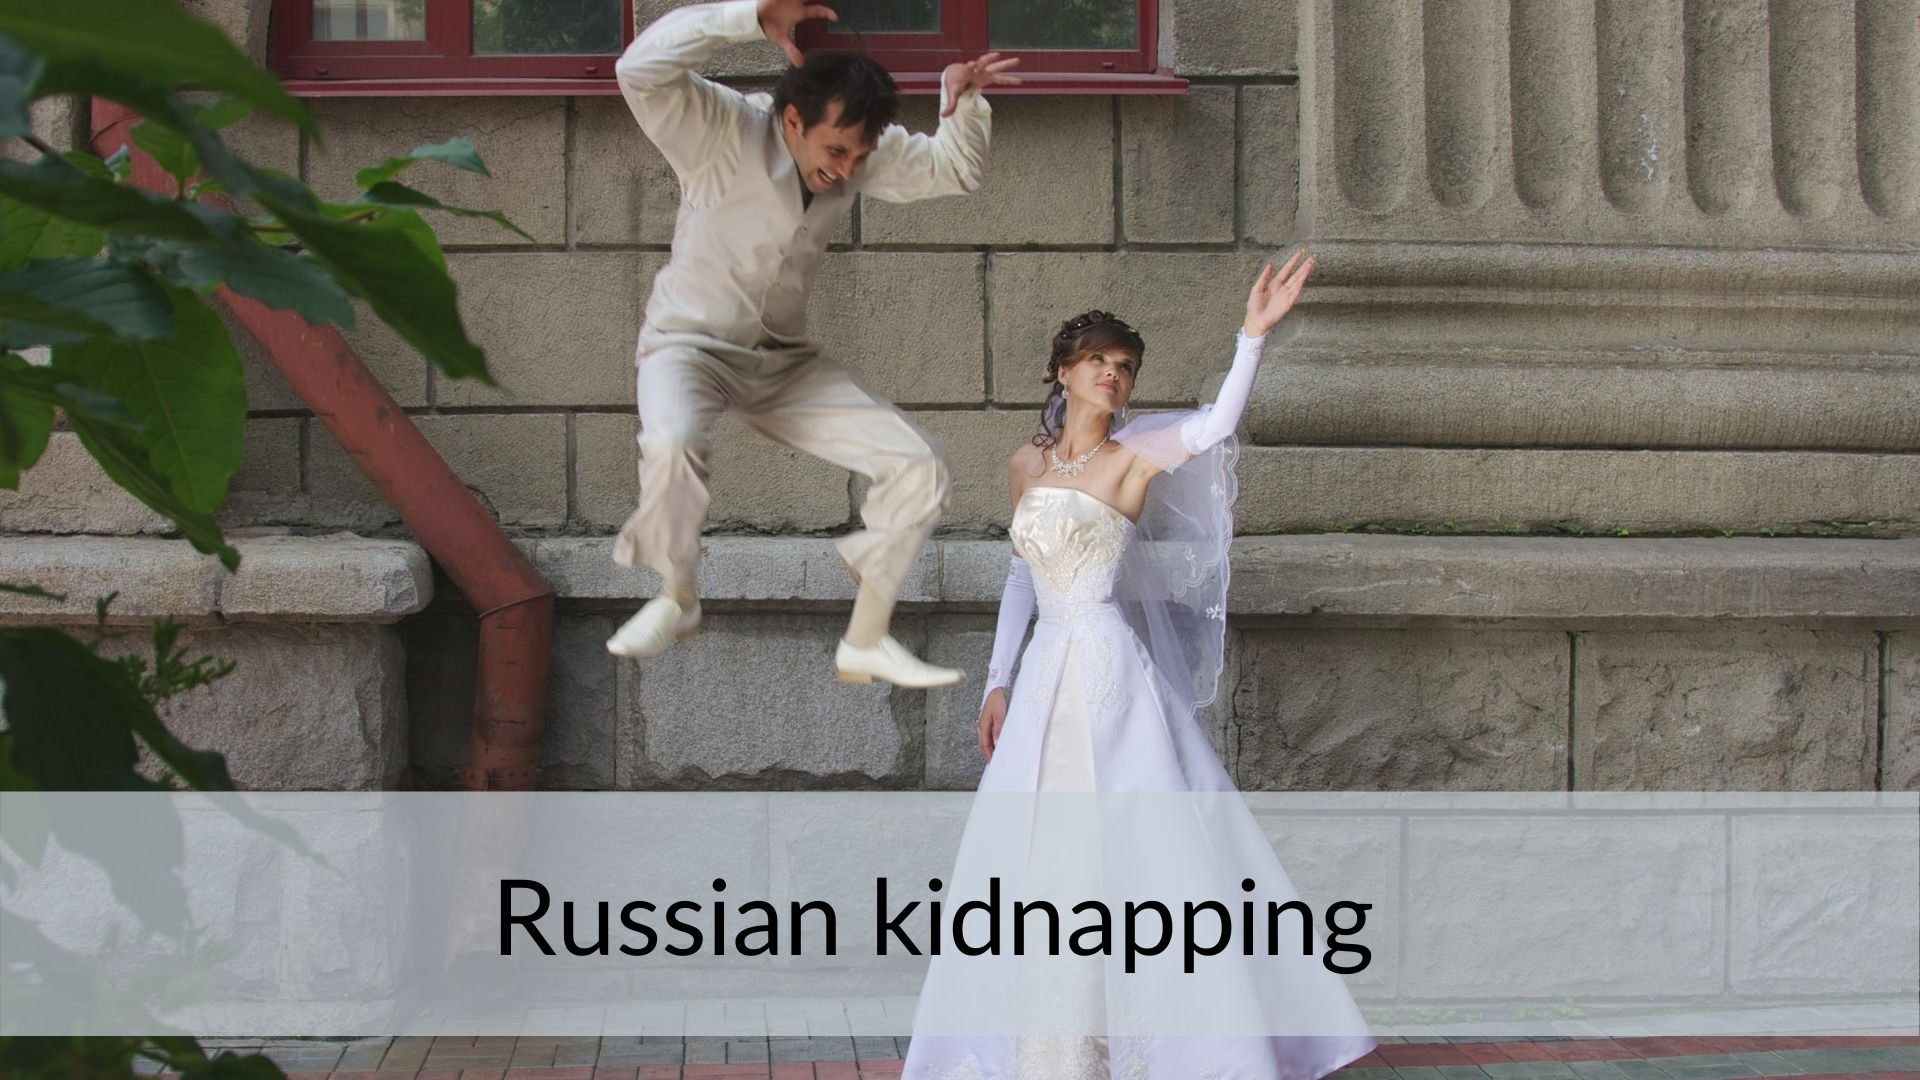 russian kidnapping